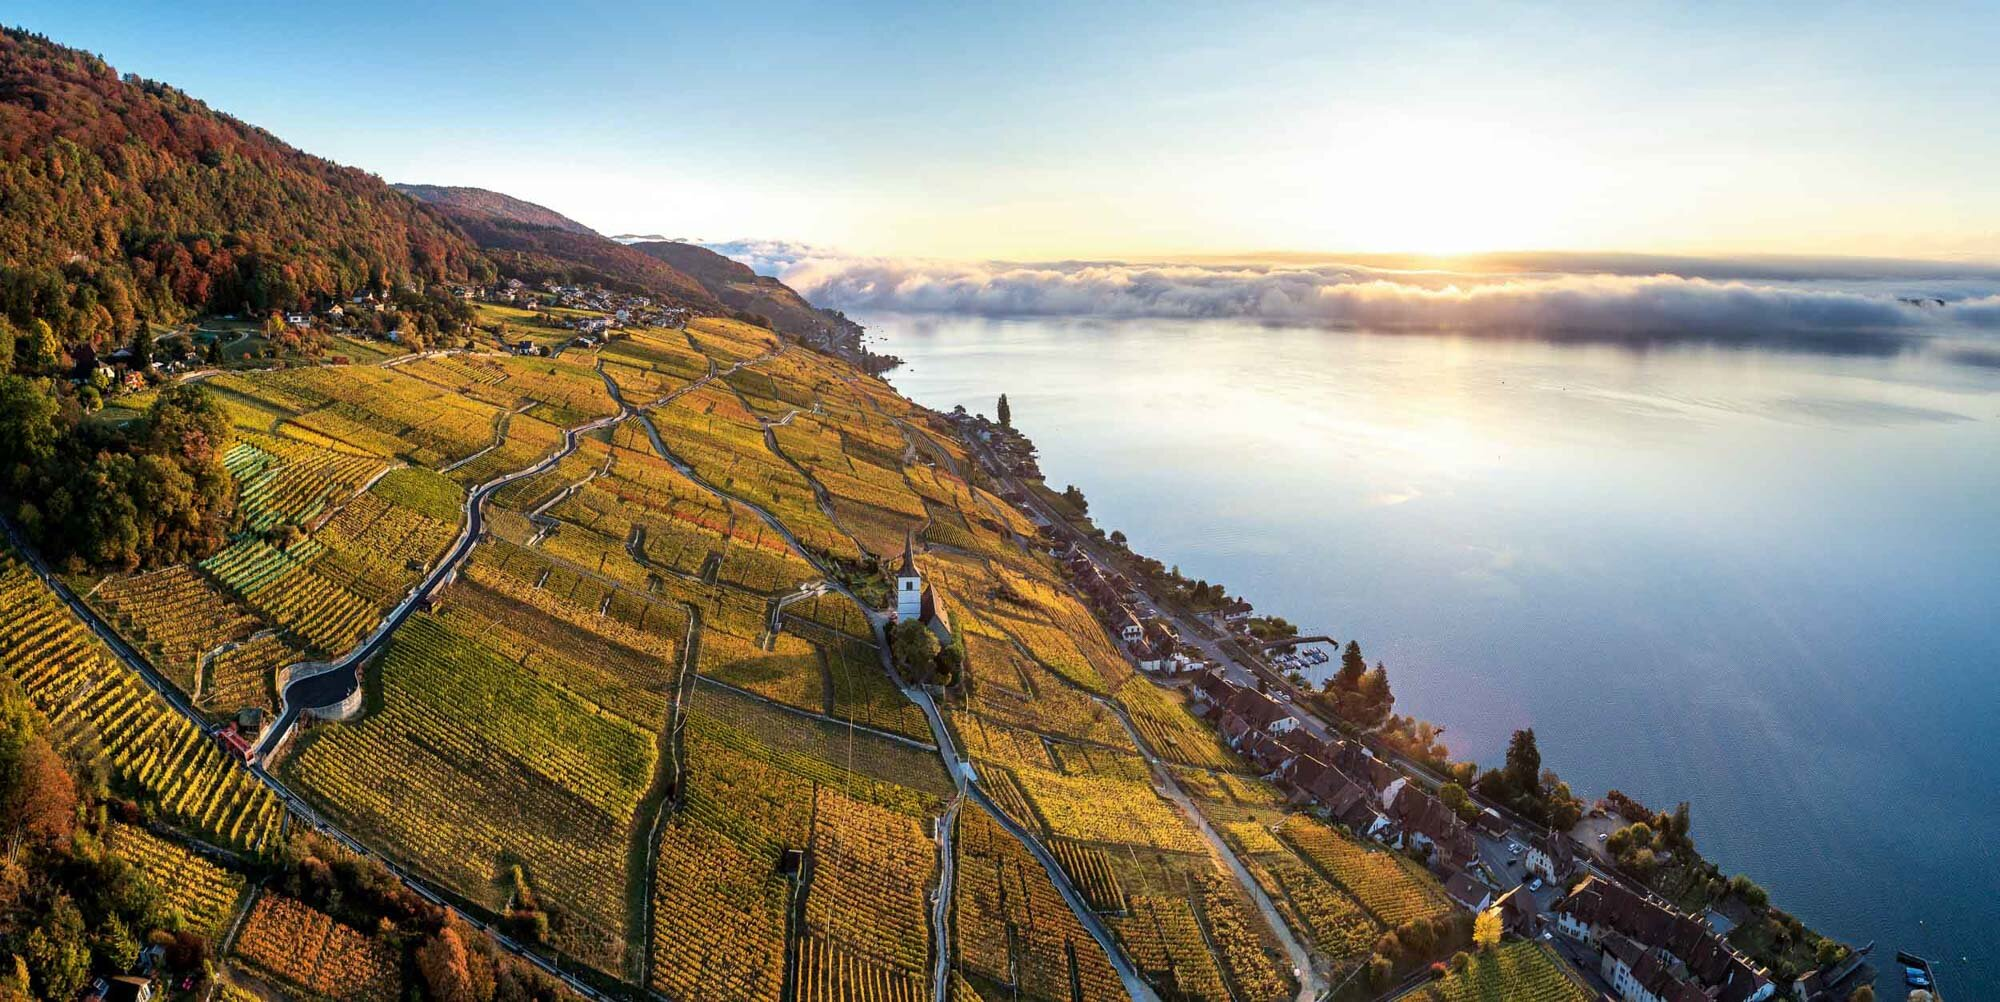 Morning mood over the vineyard of Ligerz with view towards Biel. Copyright by: Switzerland Tourism